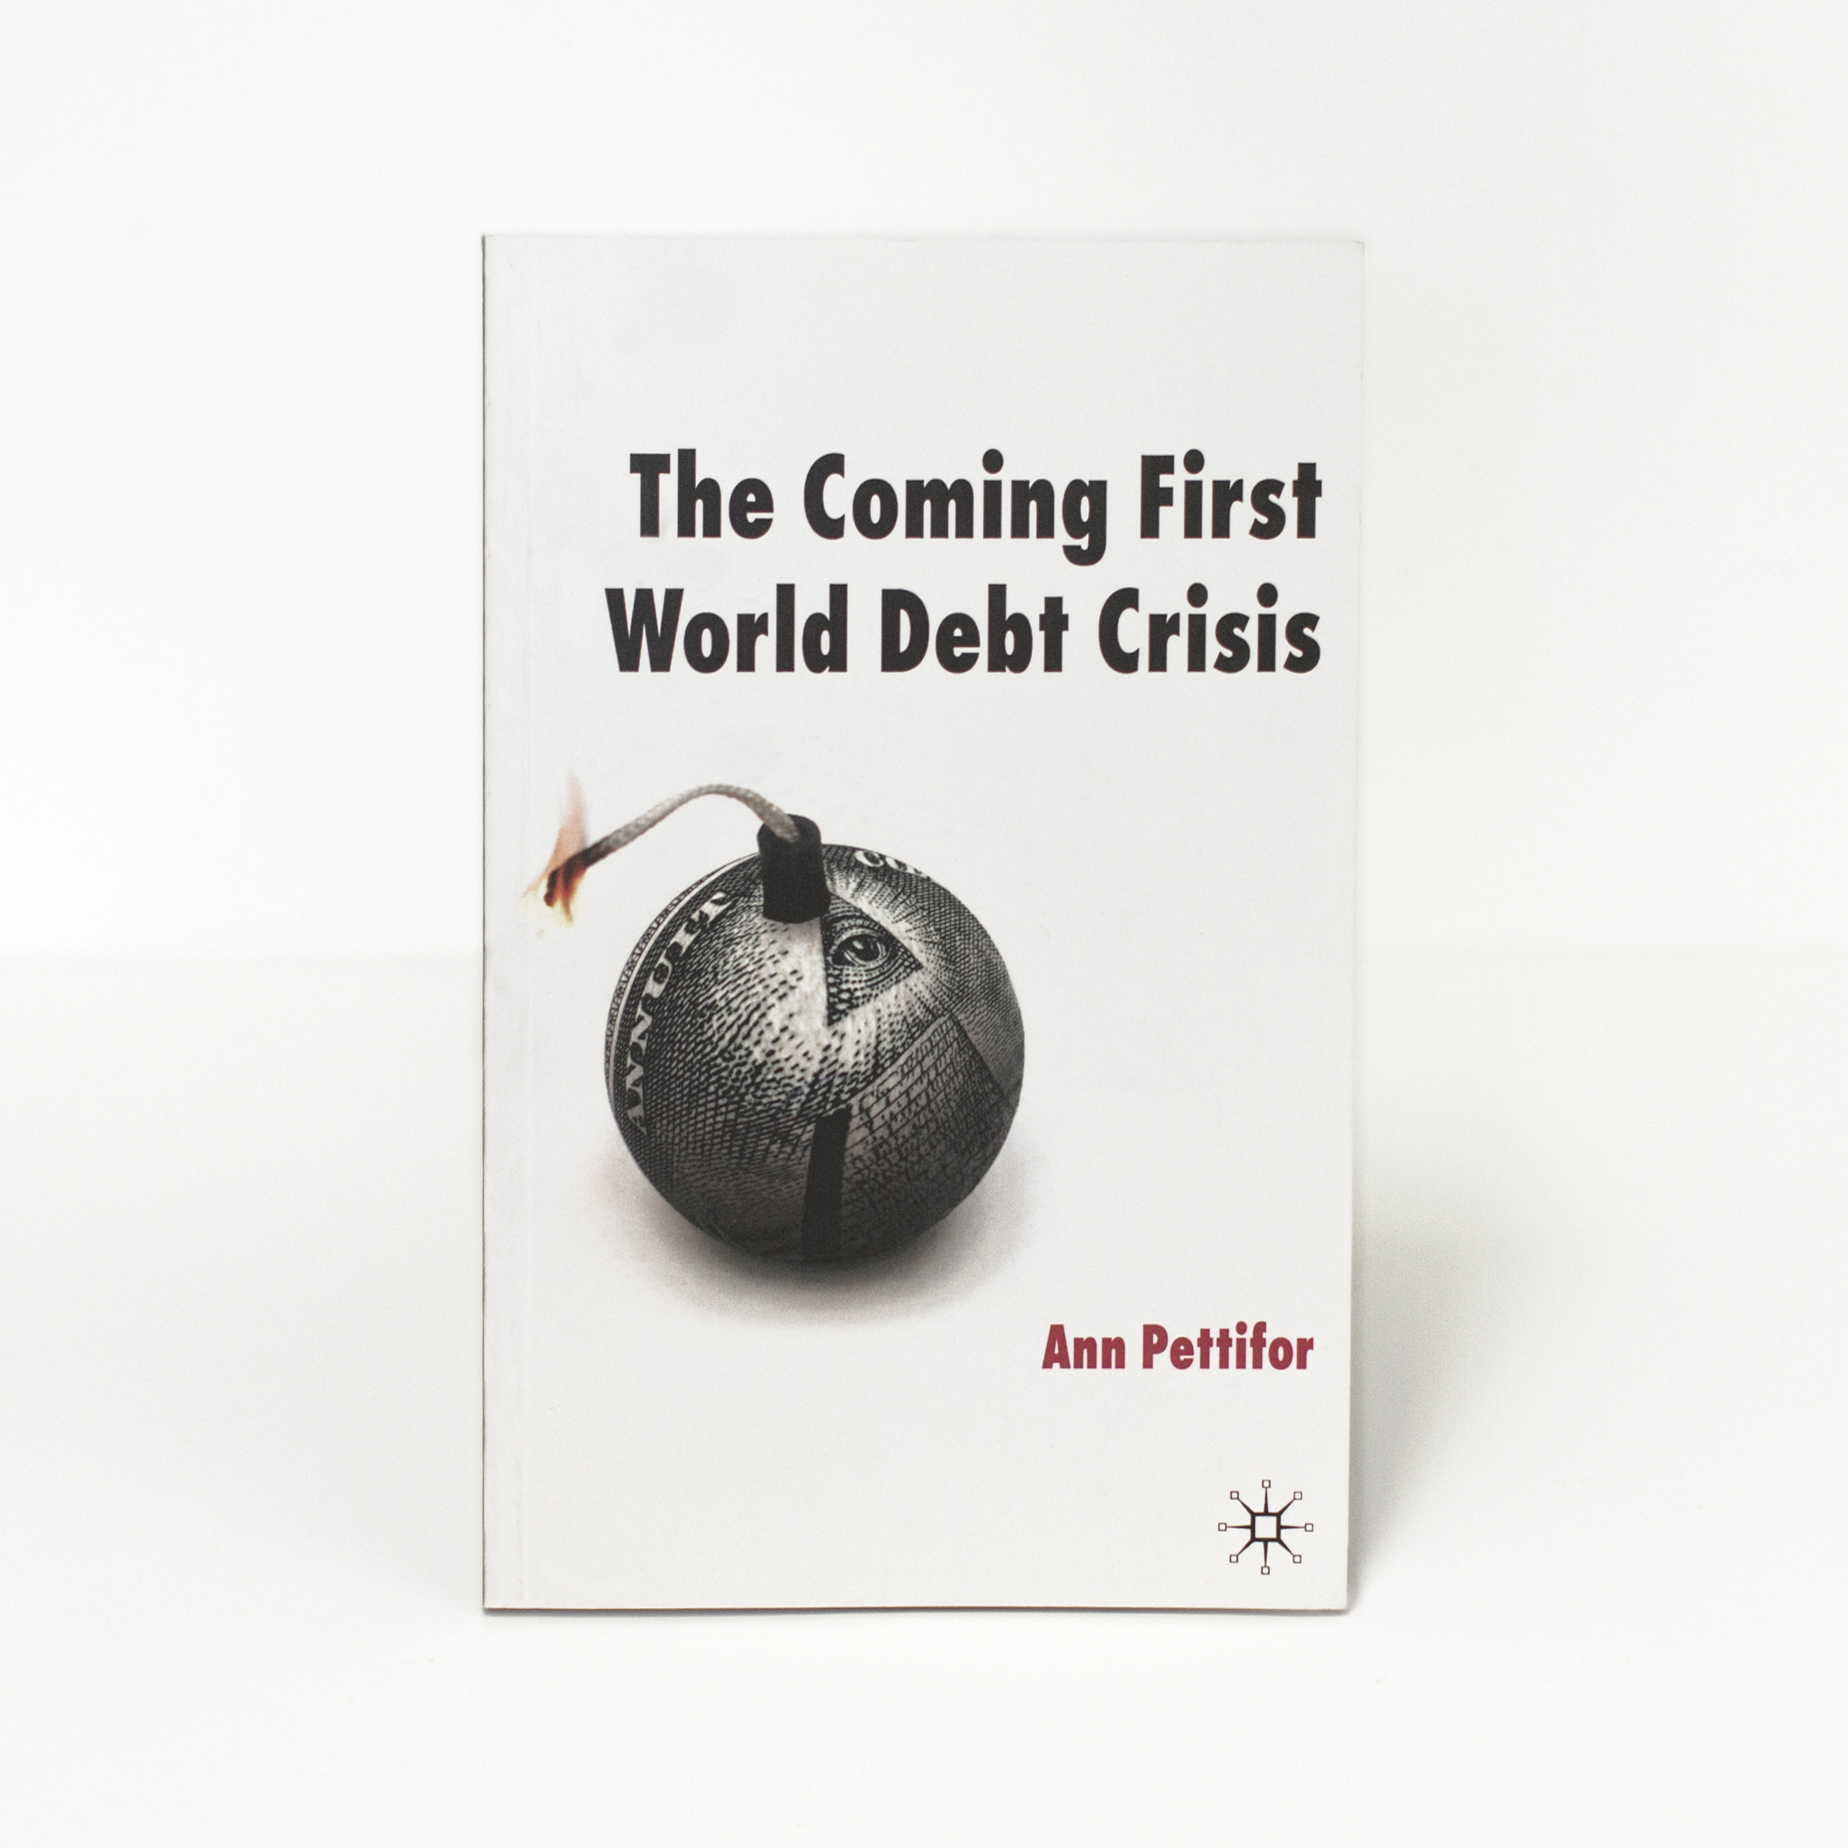 The Coming First World Debt Crisis  Ann Pettifor  (Palgrave, 2006)     Buy